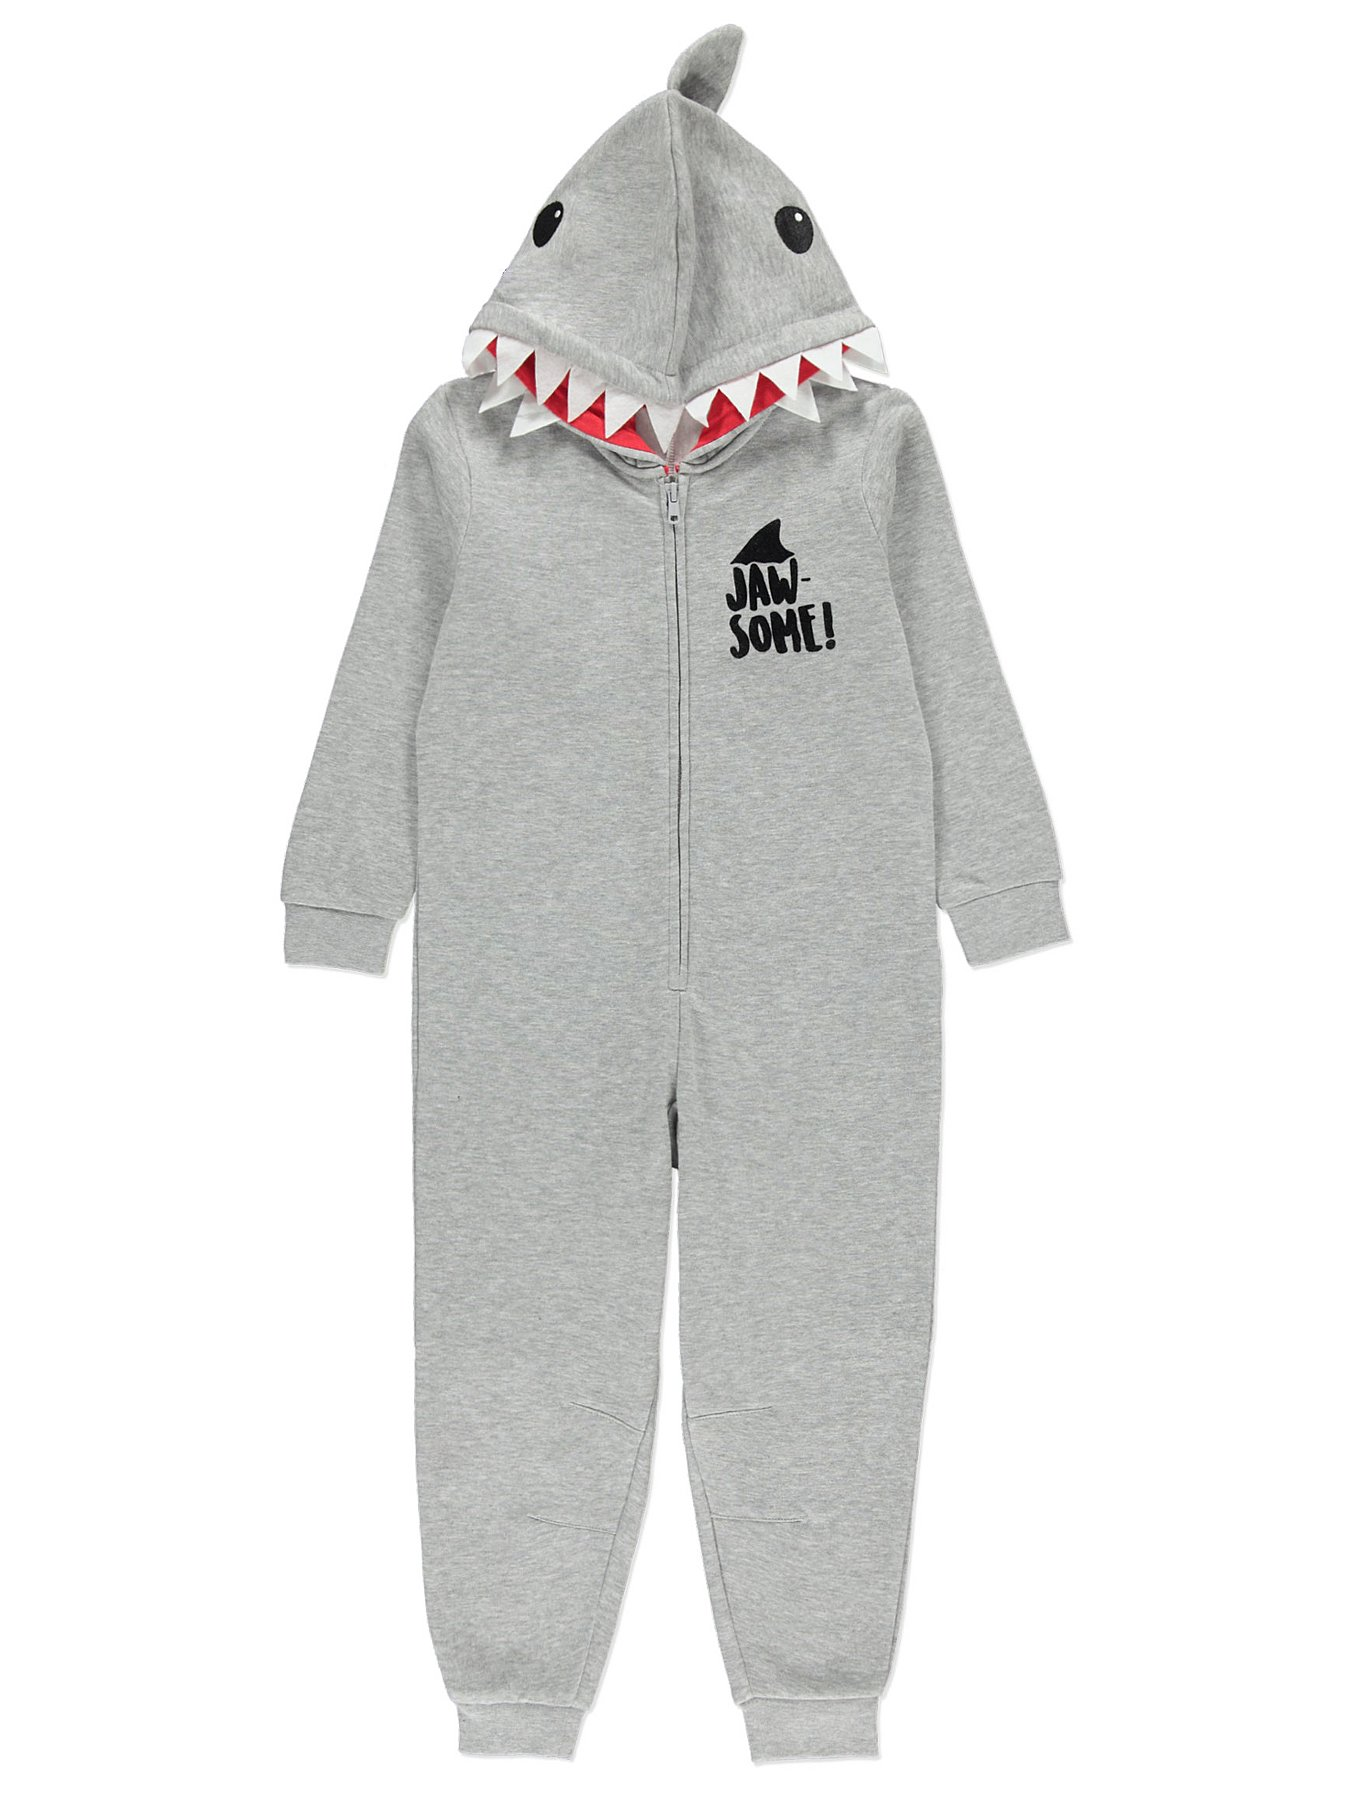 24695f0c0 Shark Totally Jawesome Onesie